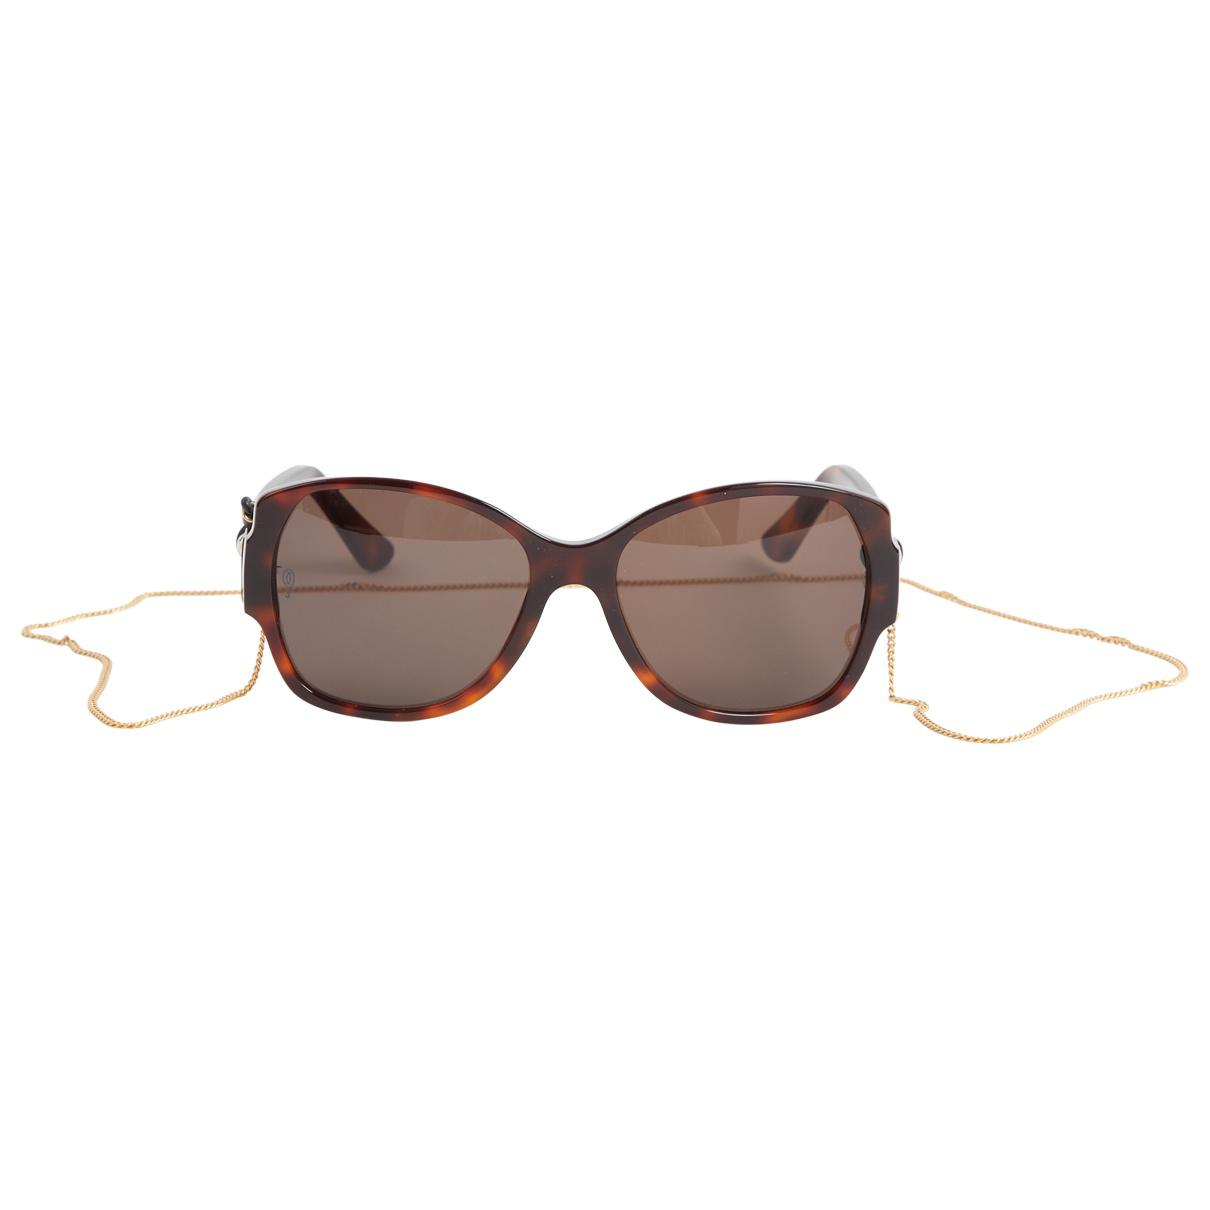 ffa35dc1291 Cartier PANTH RE DIVINE Source · Cartier Sunglasses in Brown Lyst